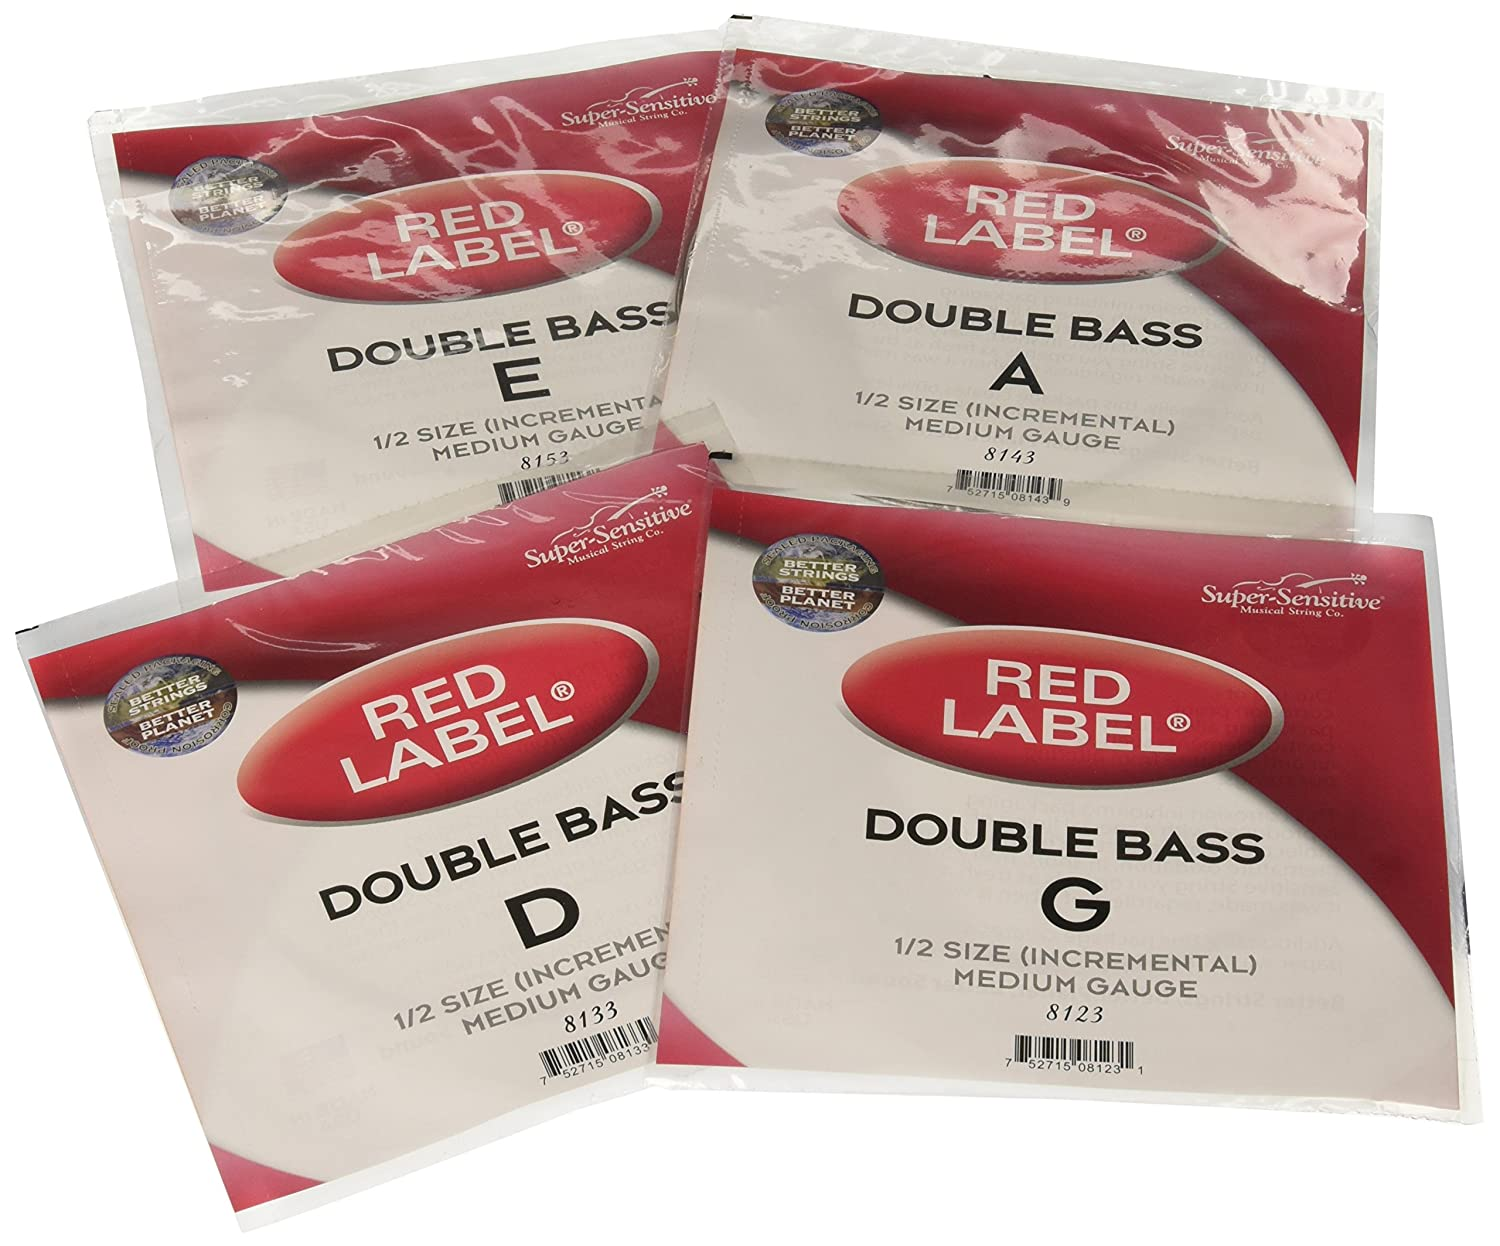 Super Sensitive 8103 Red Label Upright Bass String Set - G, D, A, E - Nickel - Incremental 1/2